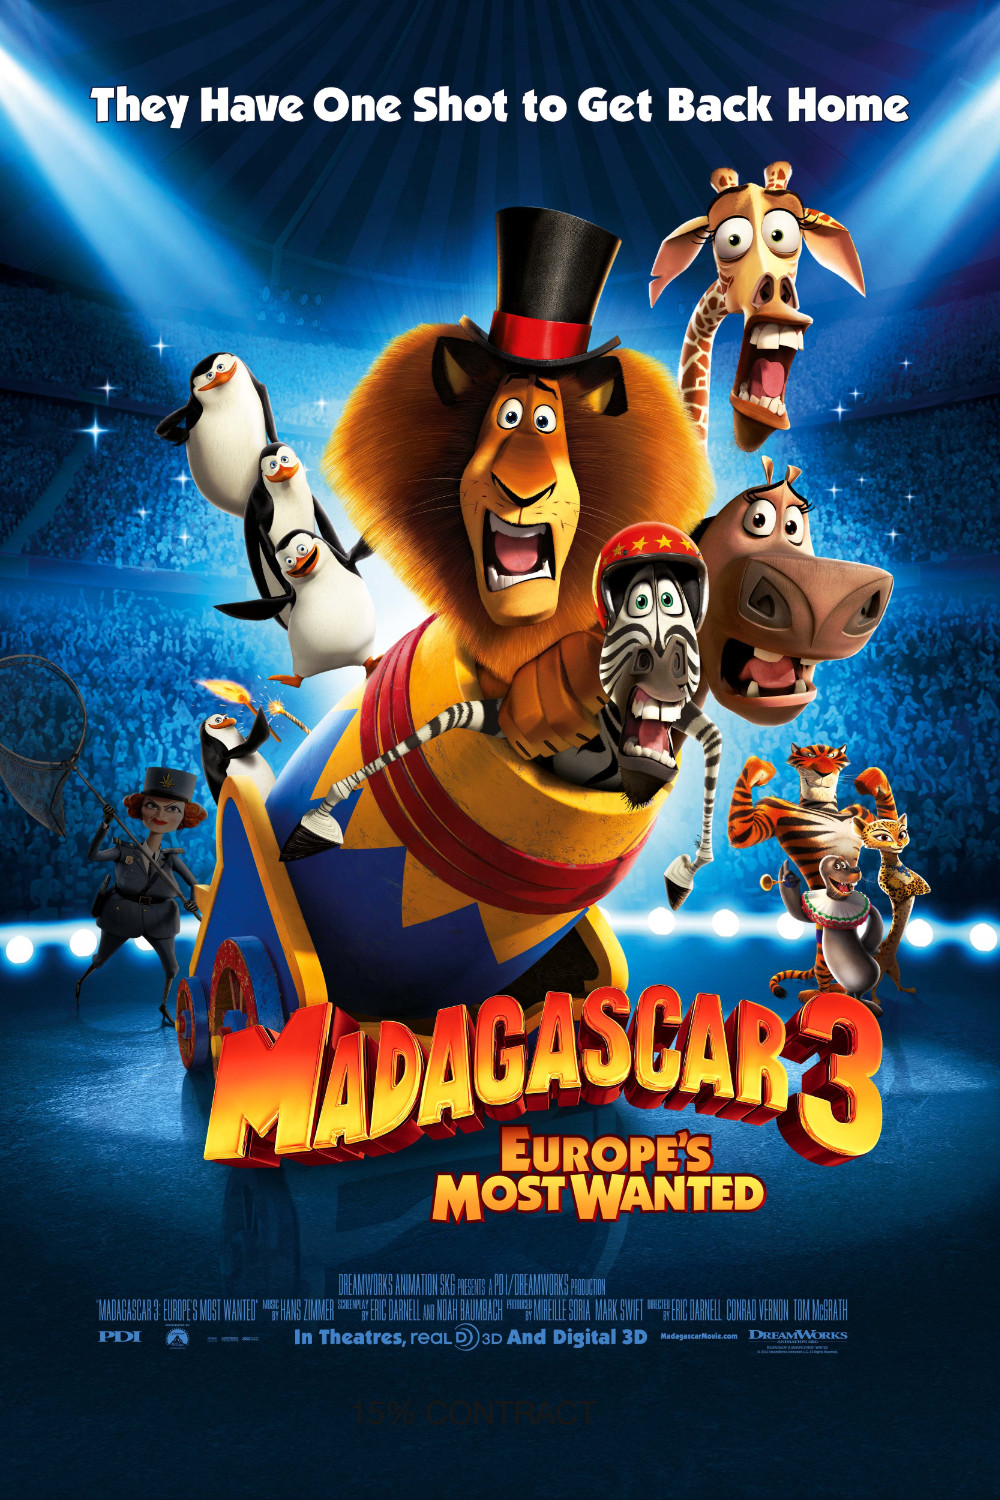 Madagascar 3 - Europe's Most Wanted